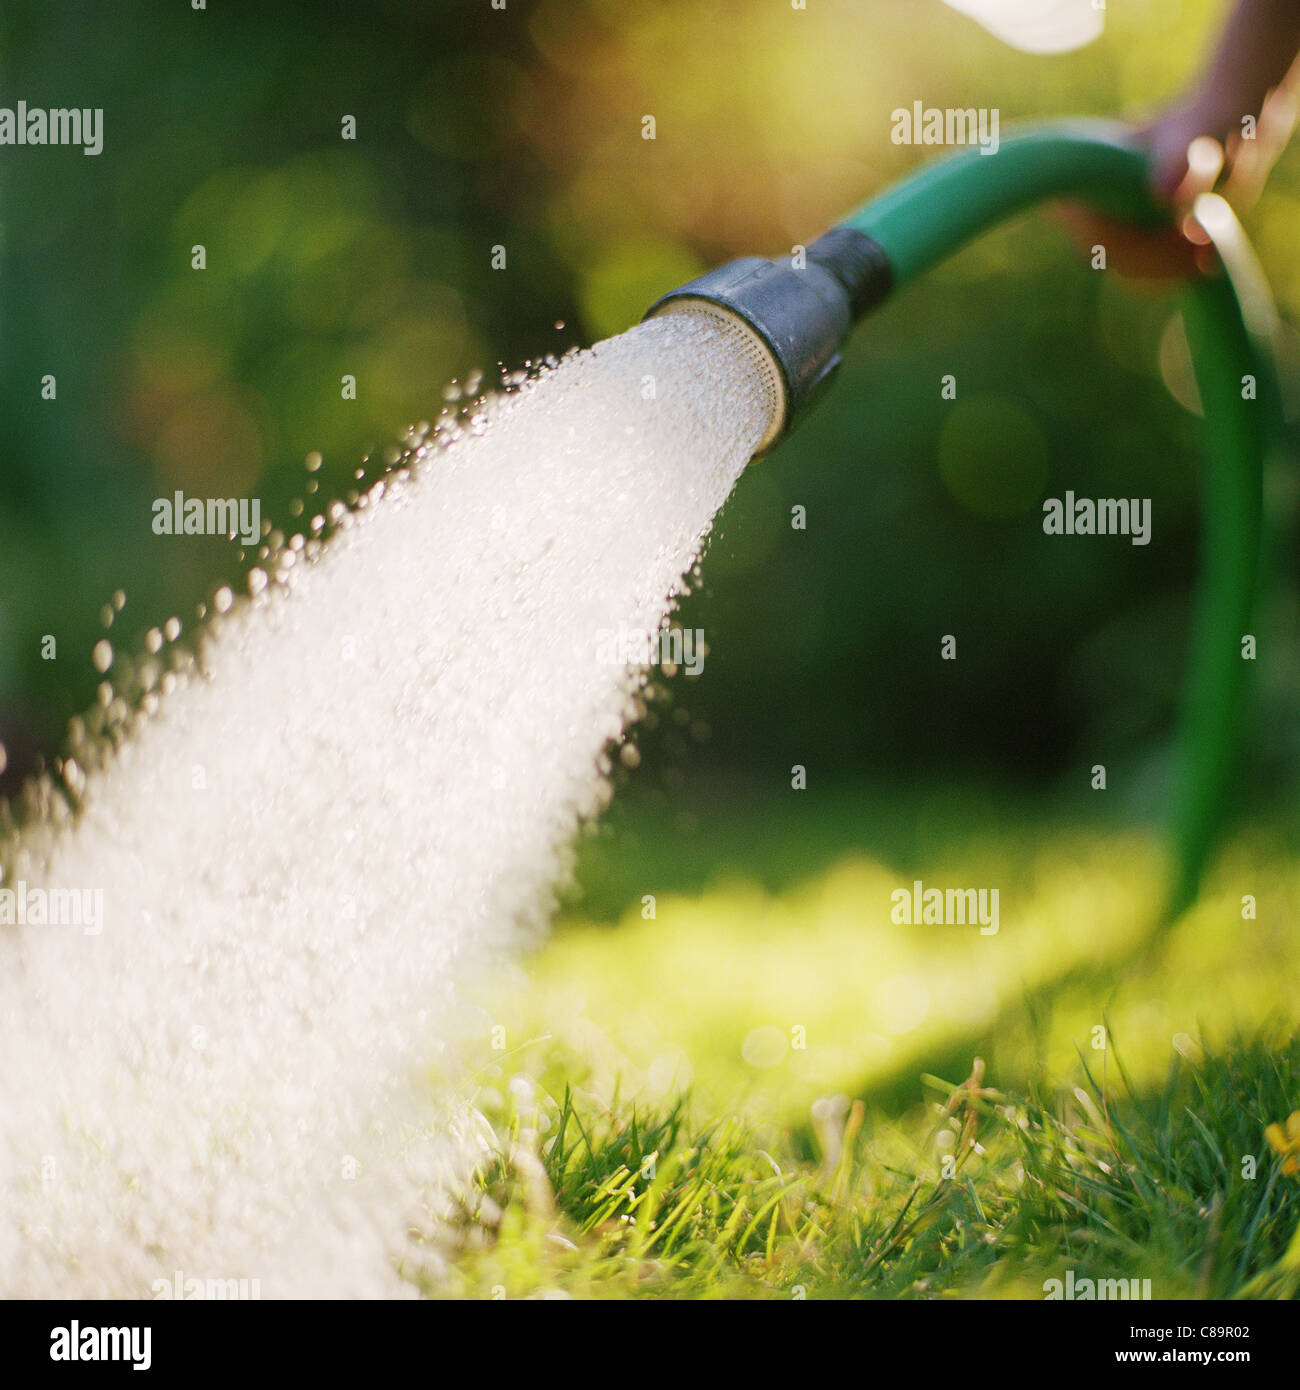 Garden hose pipe spraying water in the stock photo